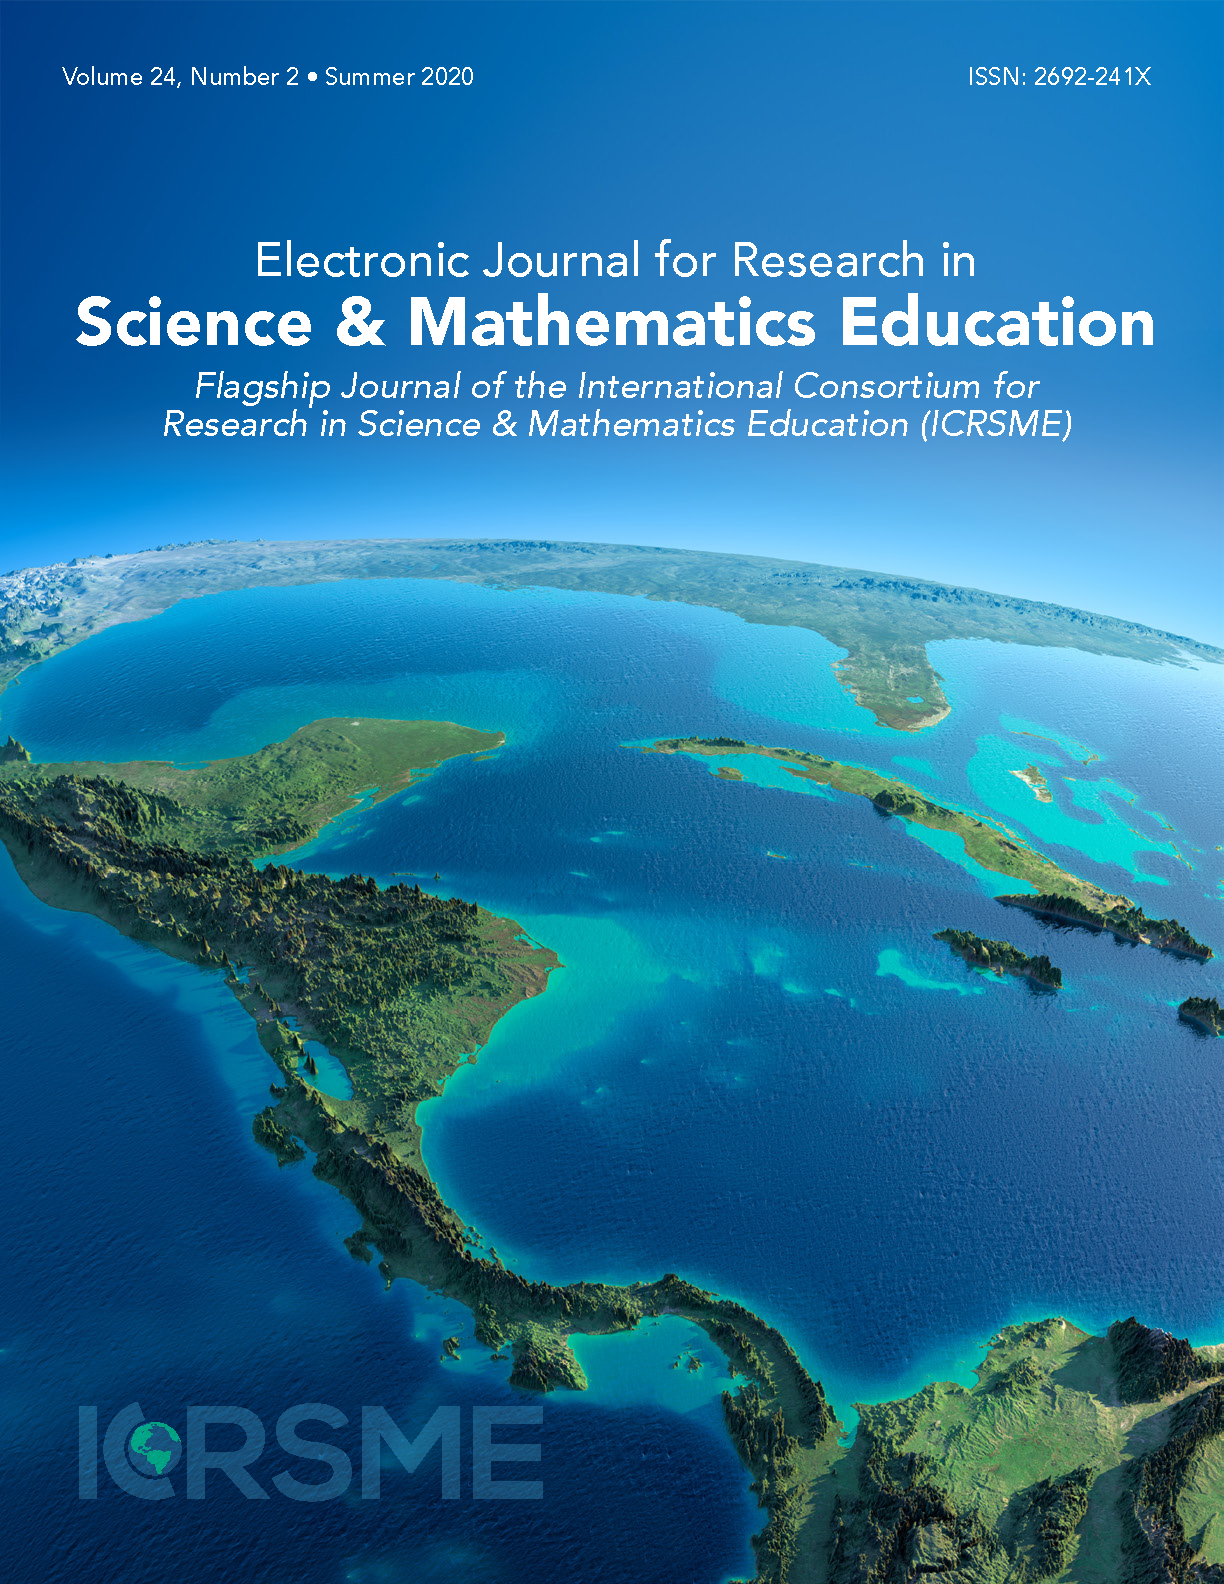 Vol 24 No 2 (2020): Electronic Journal for Research in Science & Mathematics Education  The